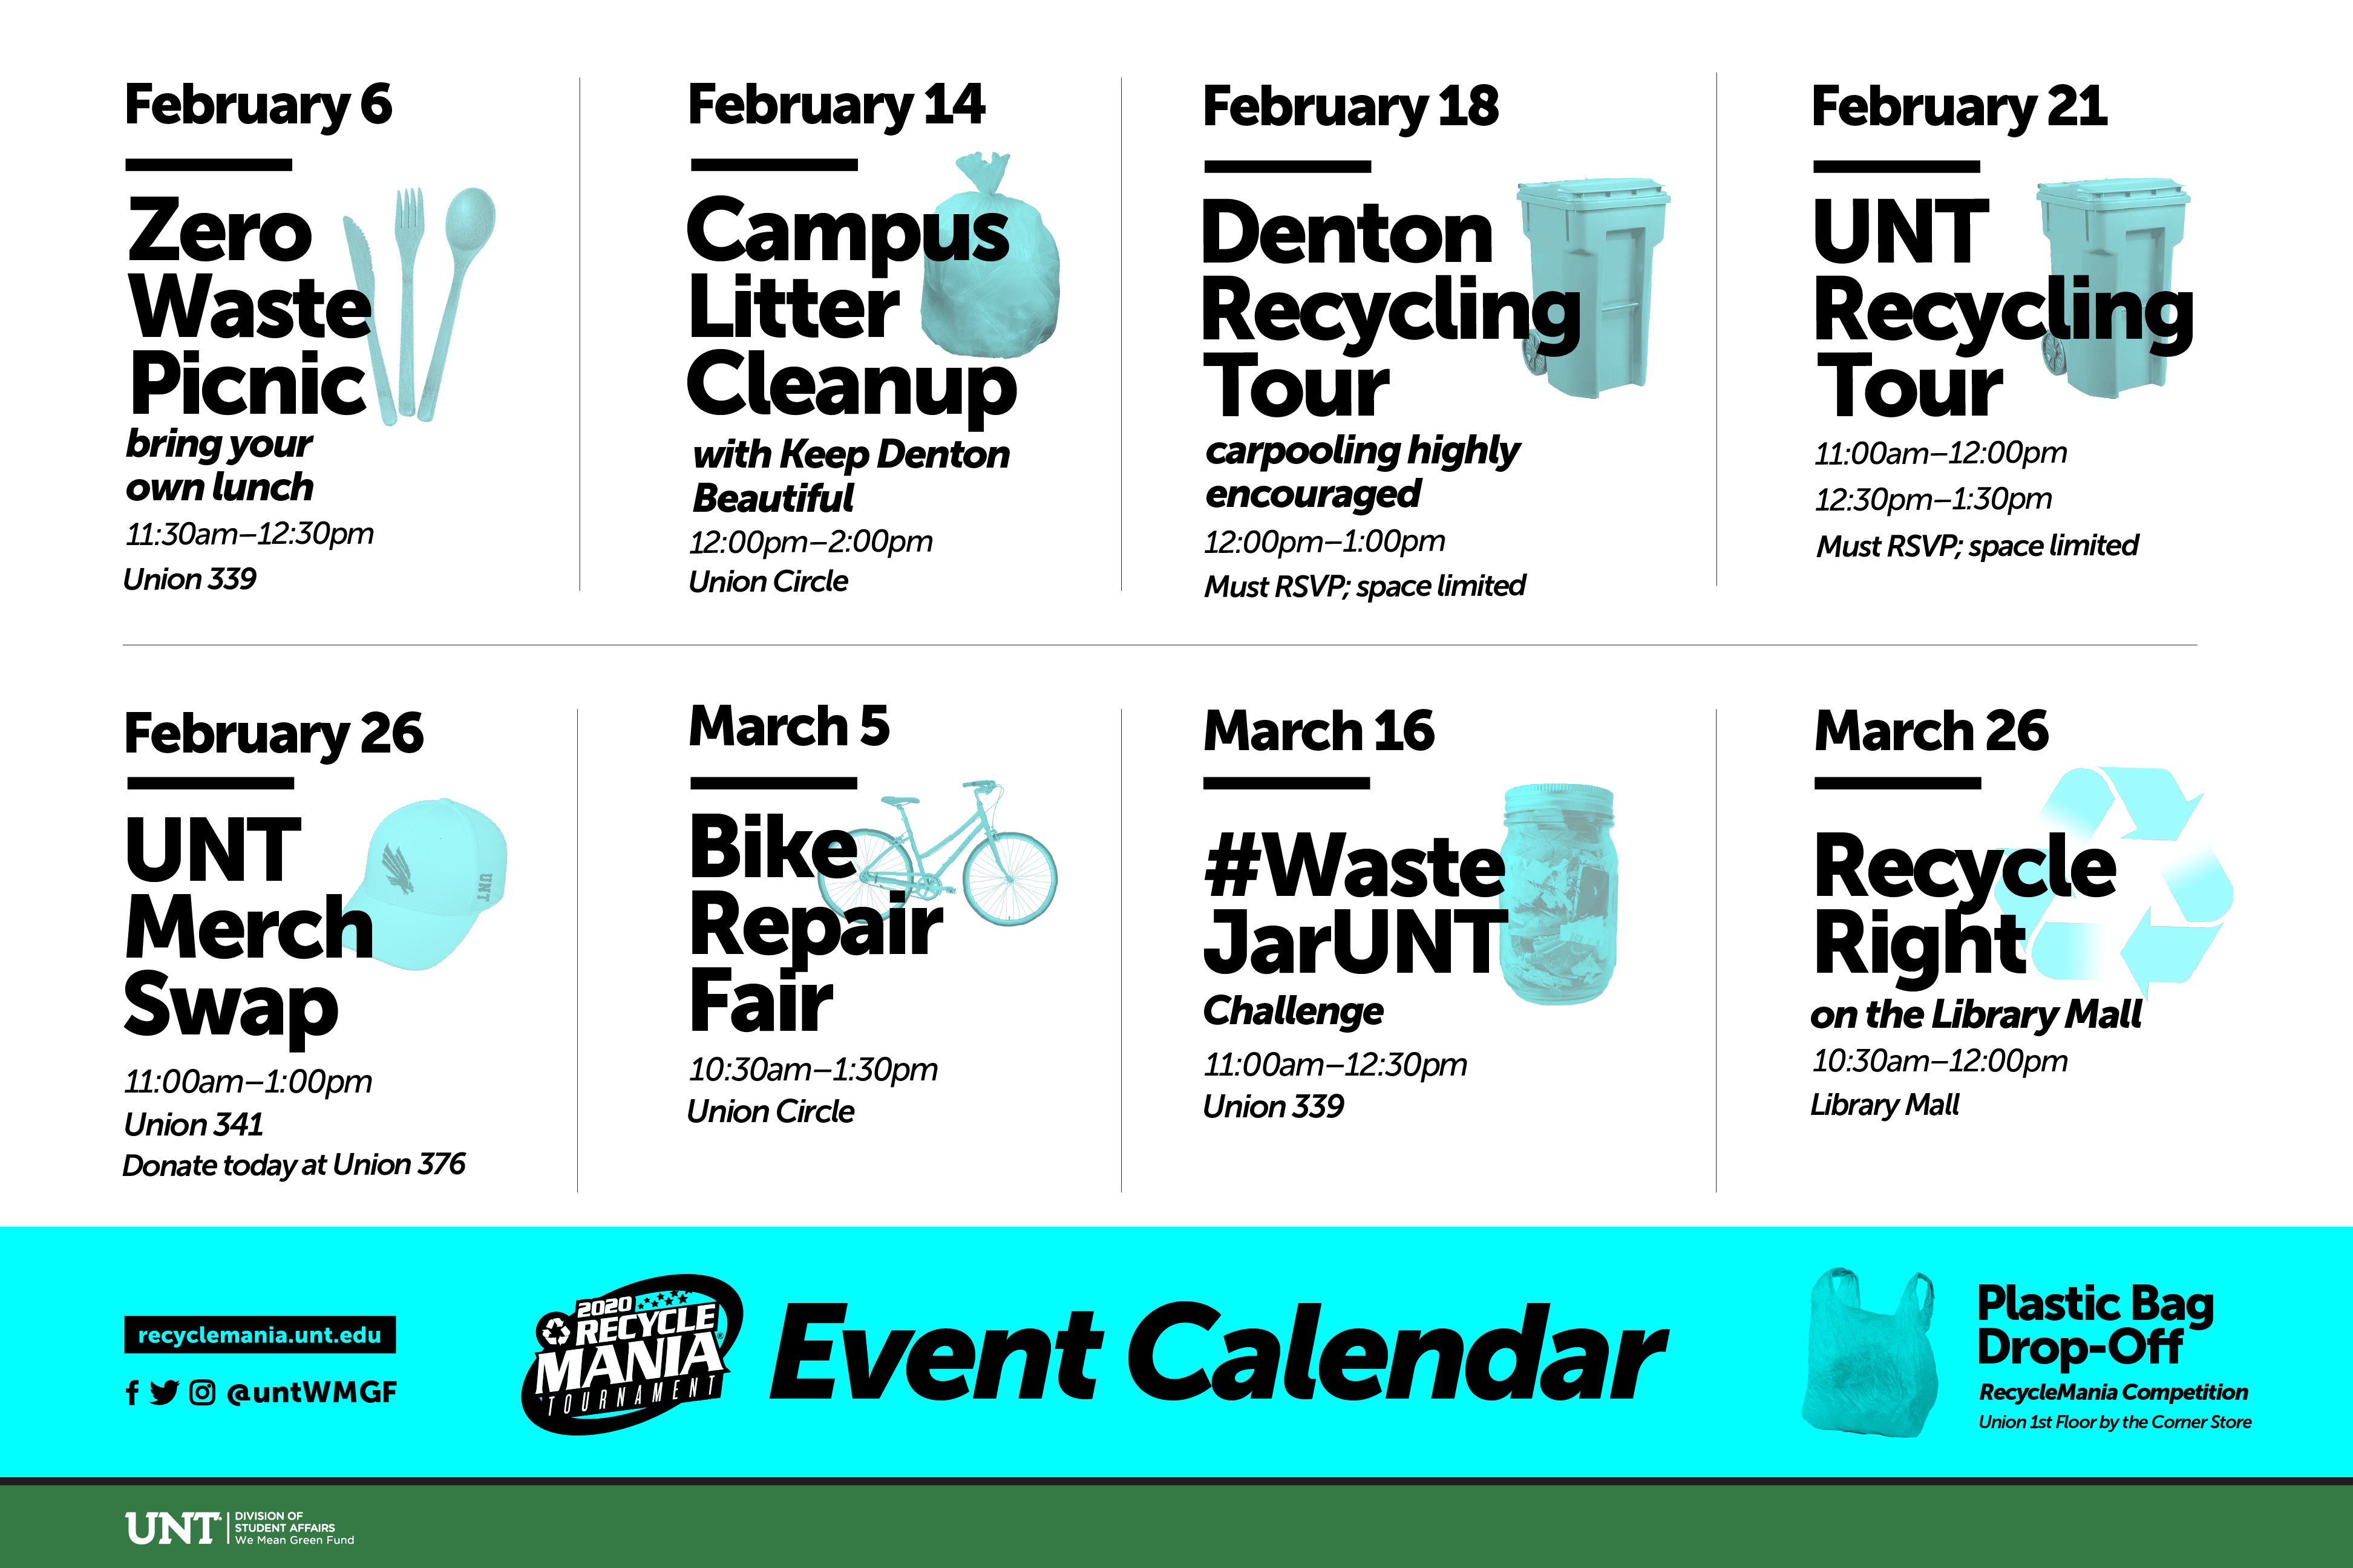 calendar of recycling events